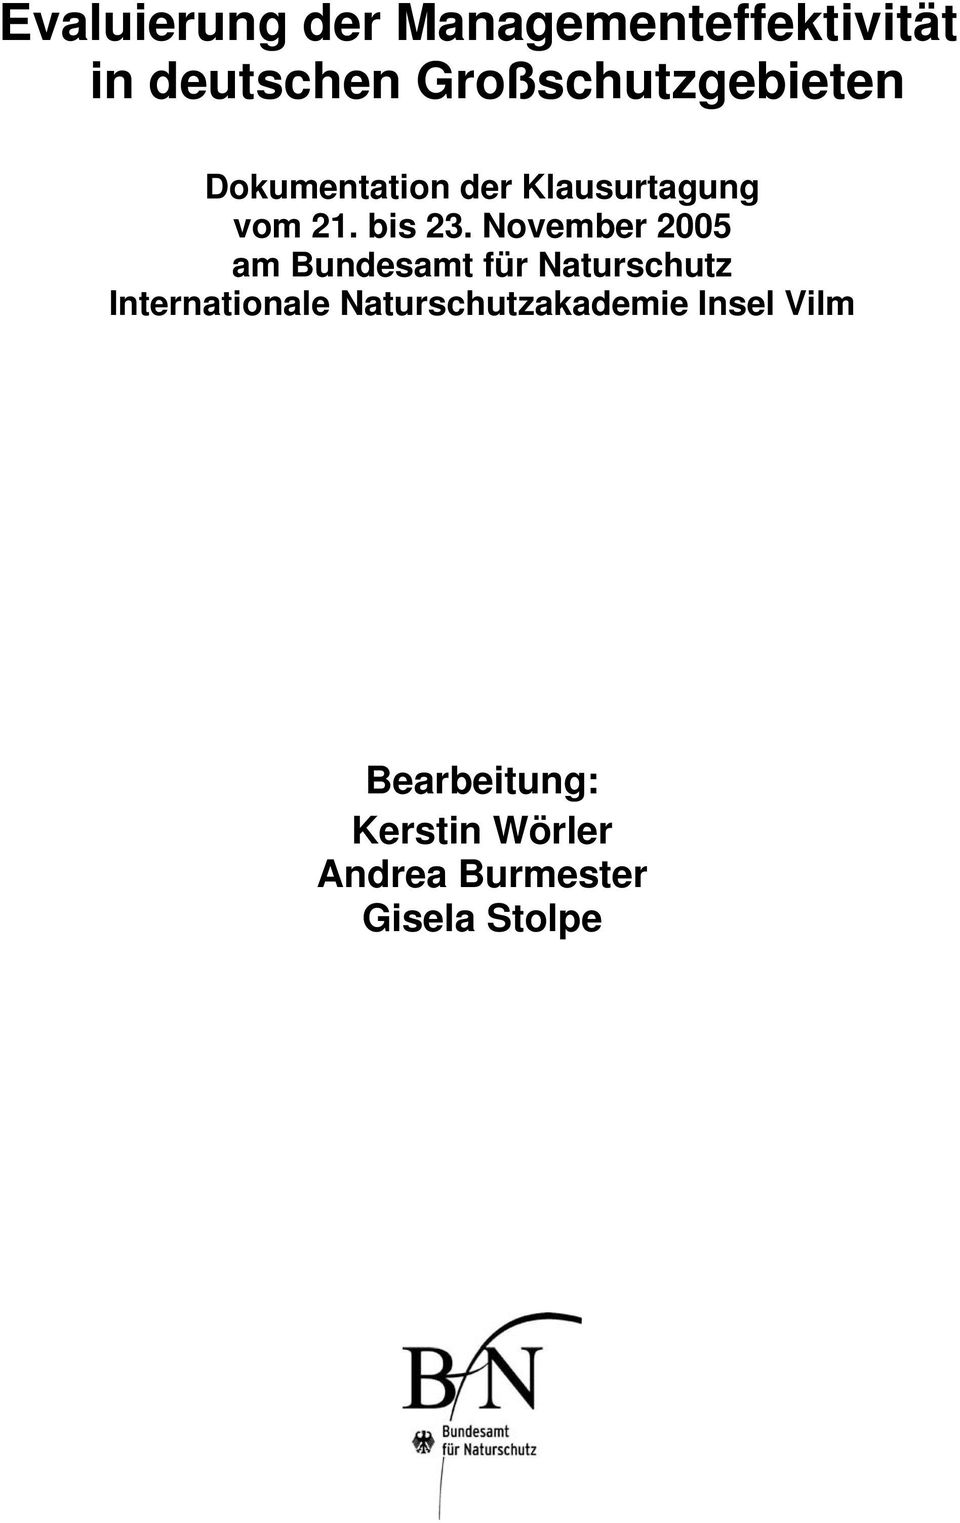 November 2005 am Bundesamt für Naturschutz Internationale